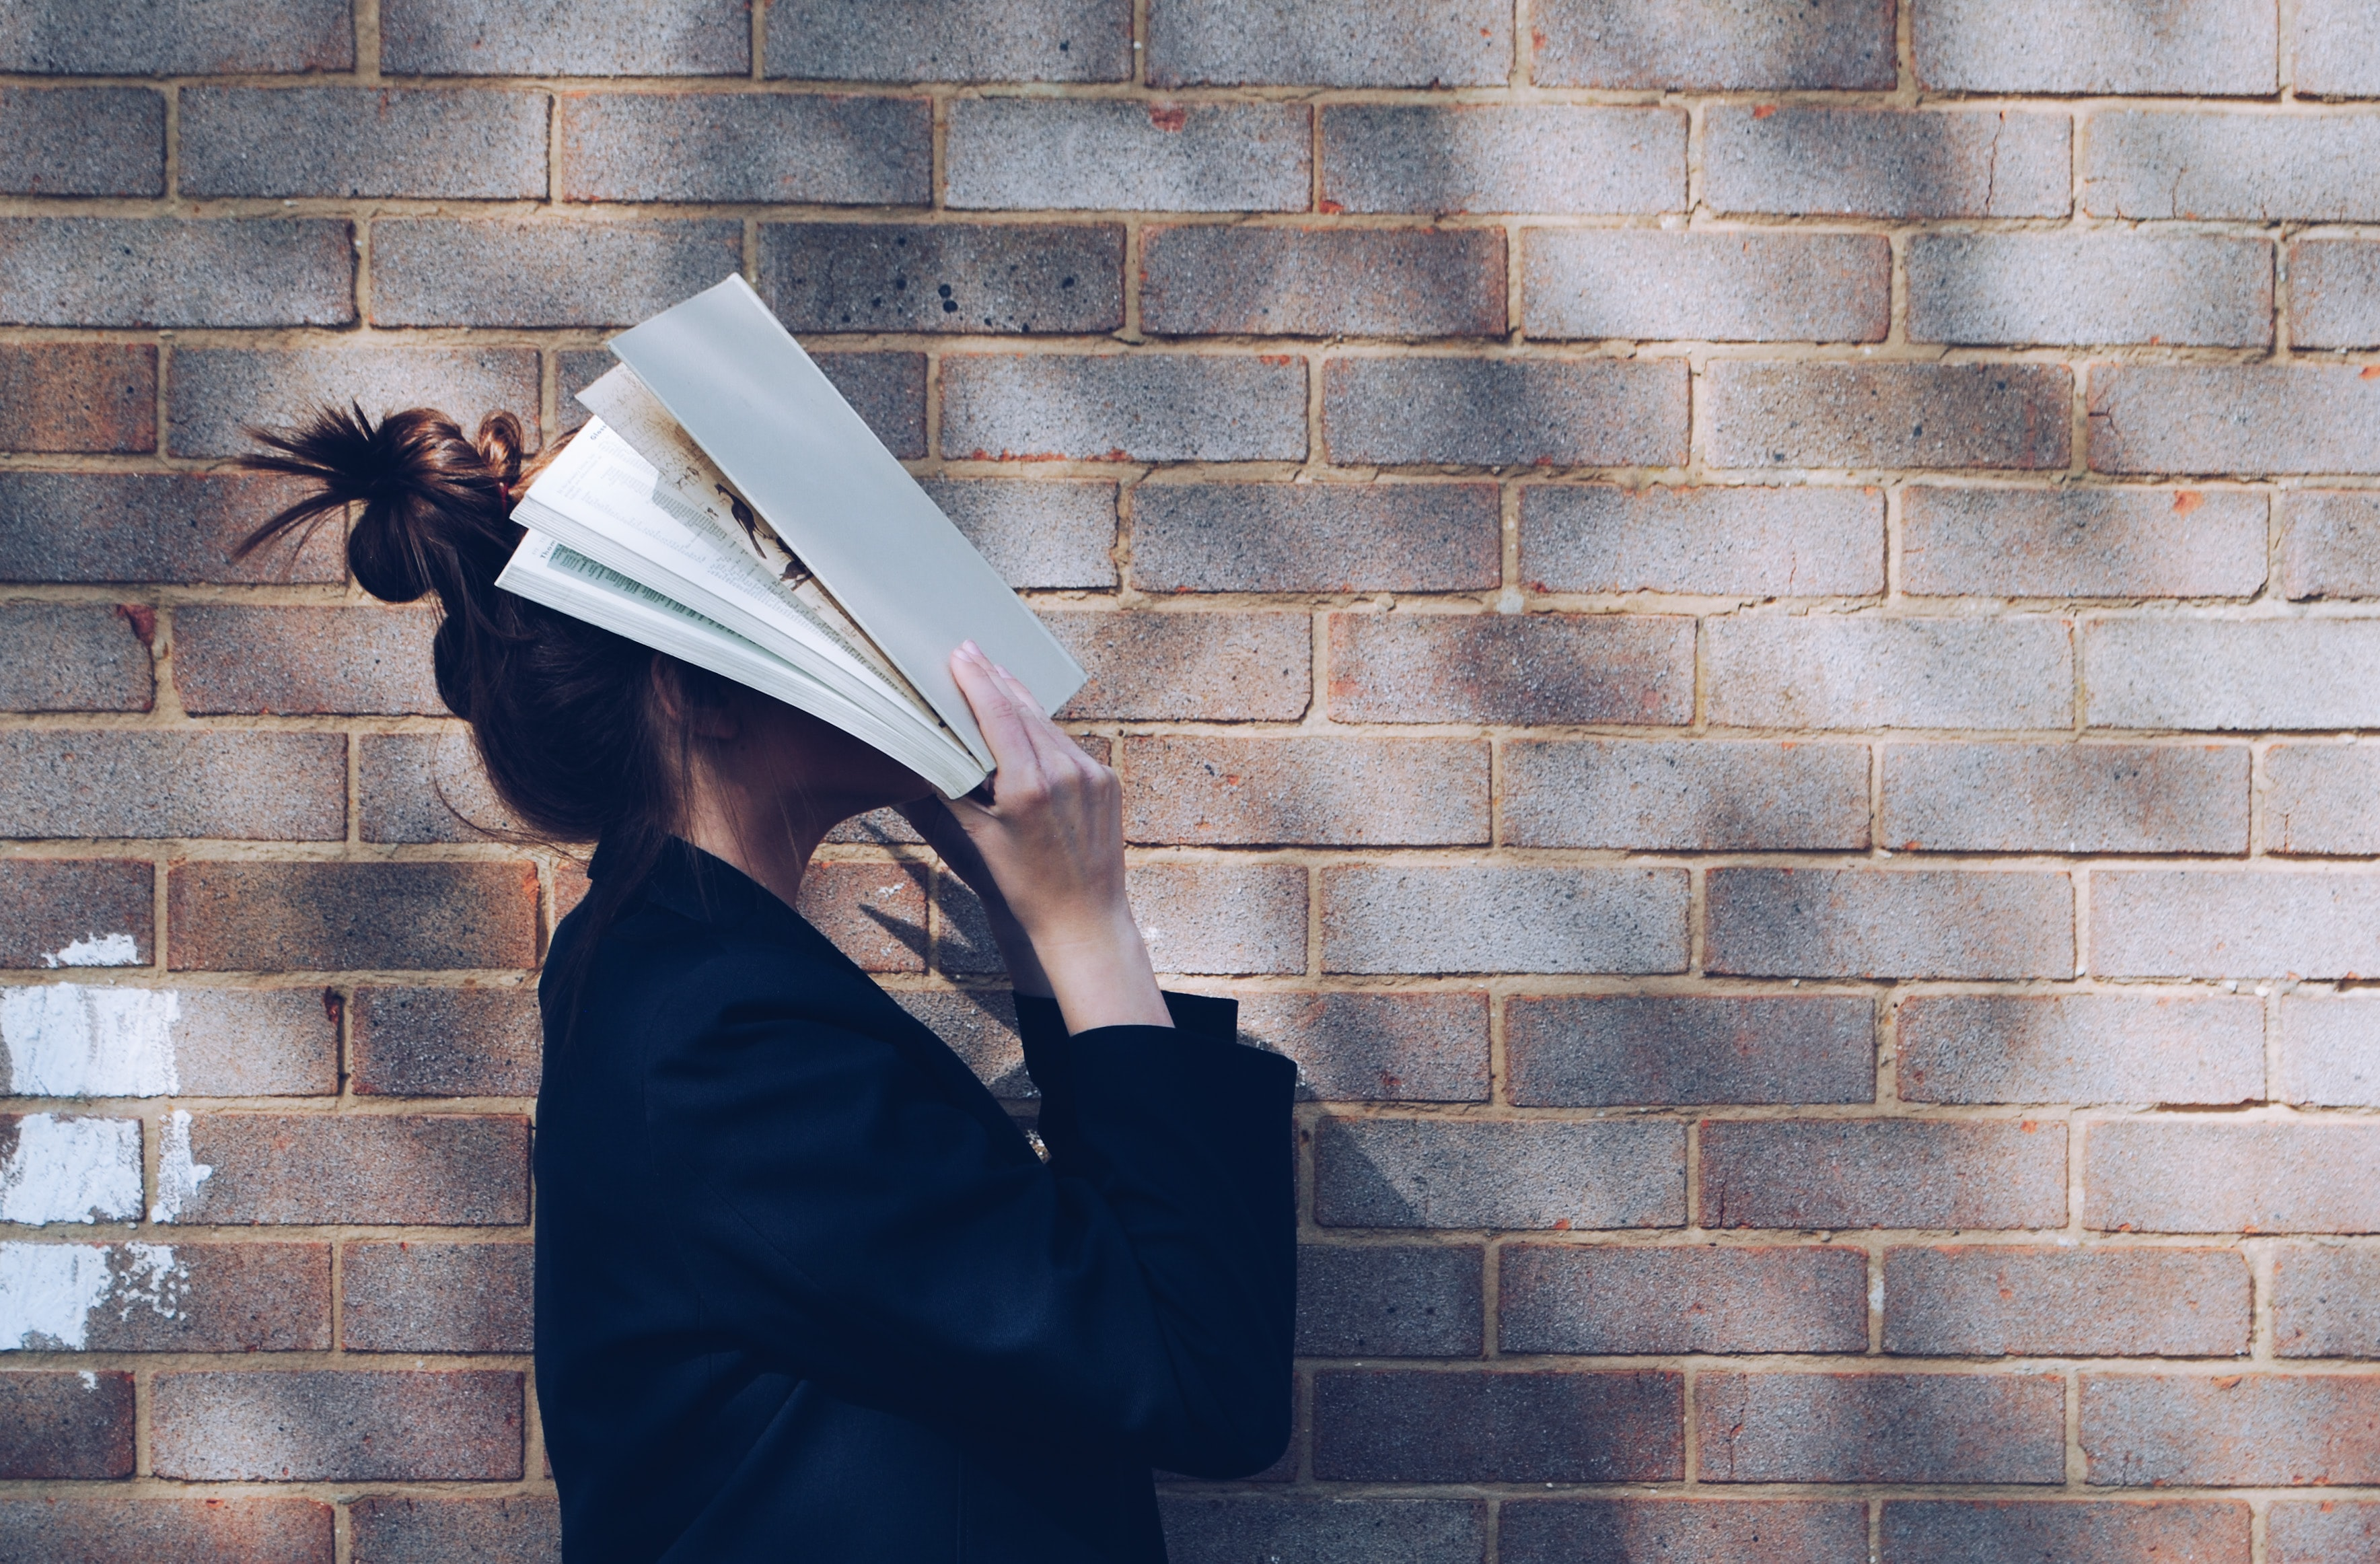 Student with a book on face